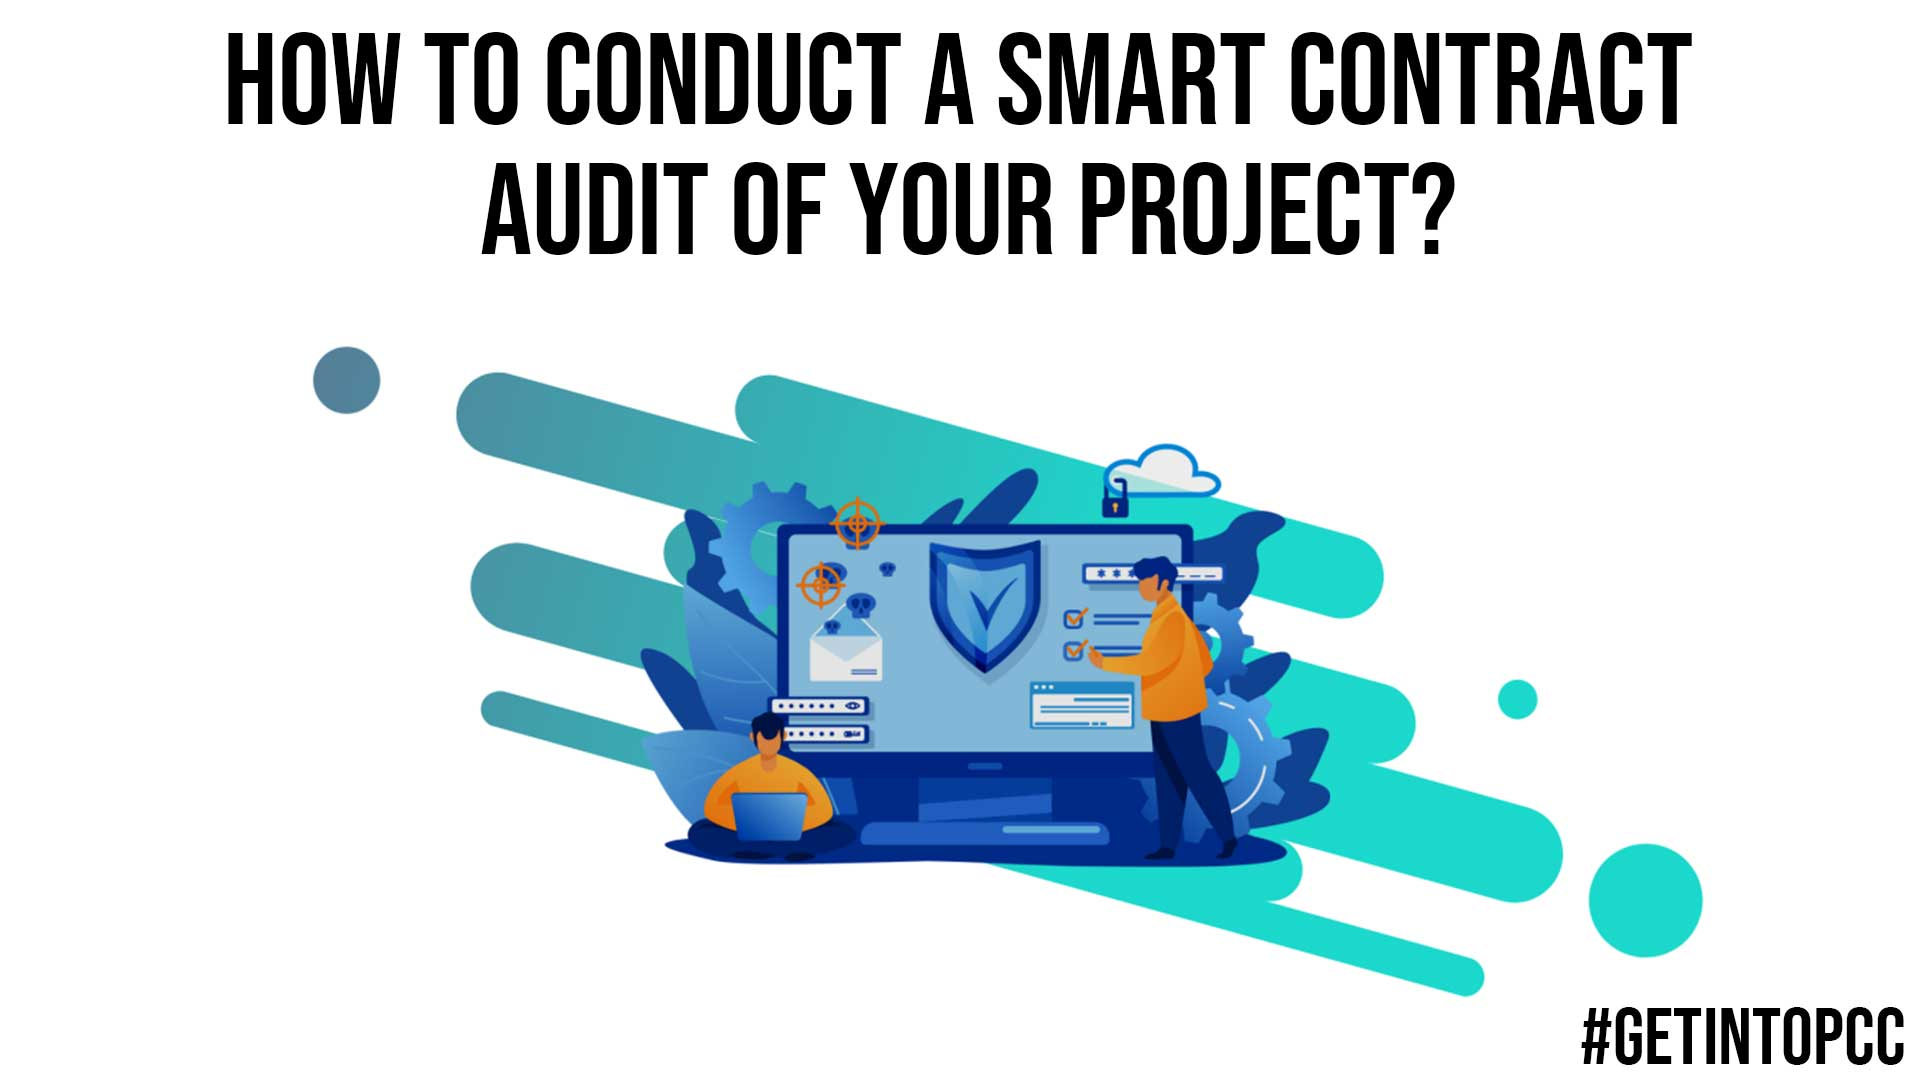 How to Conduct a Smart Contract Audit of Your Project